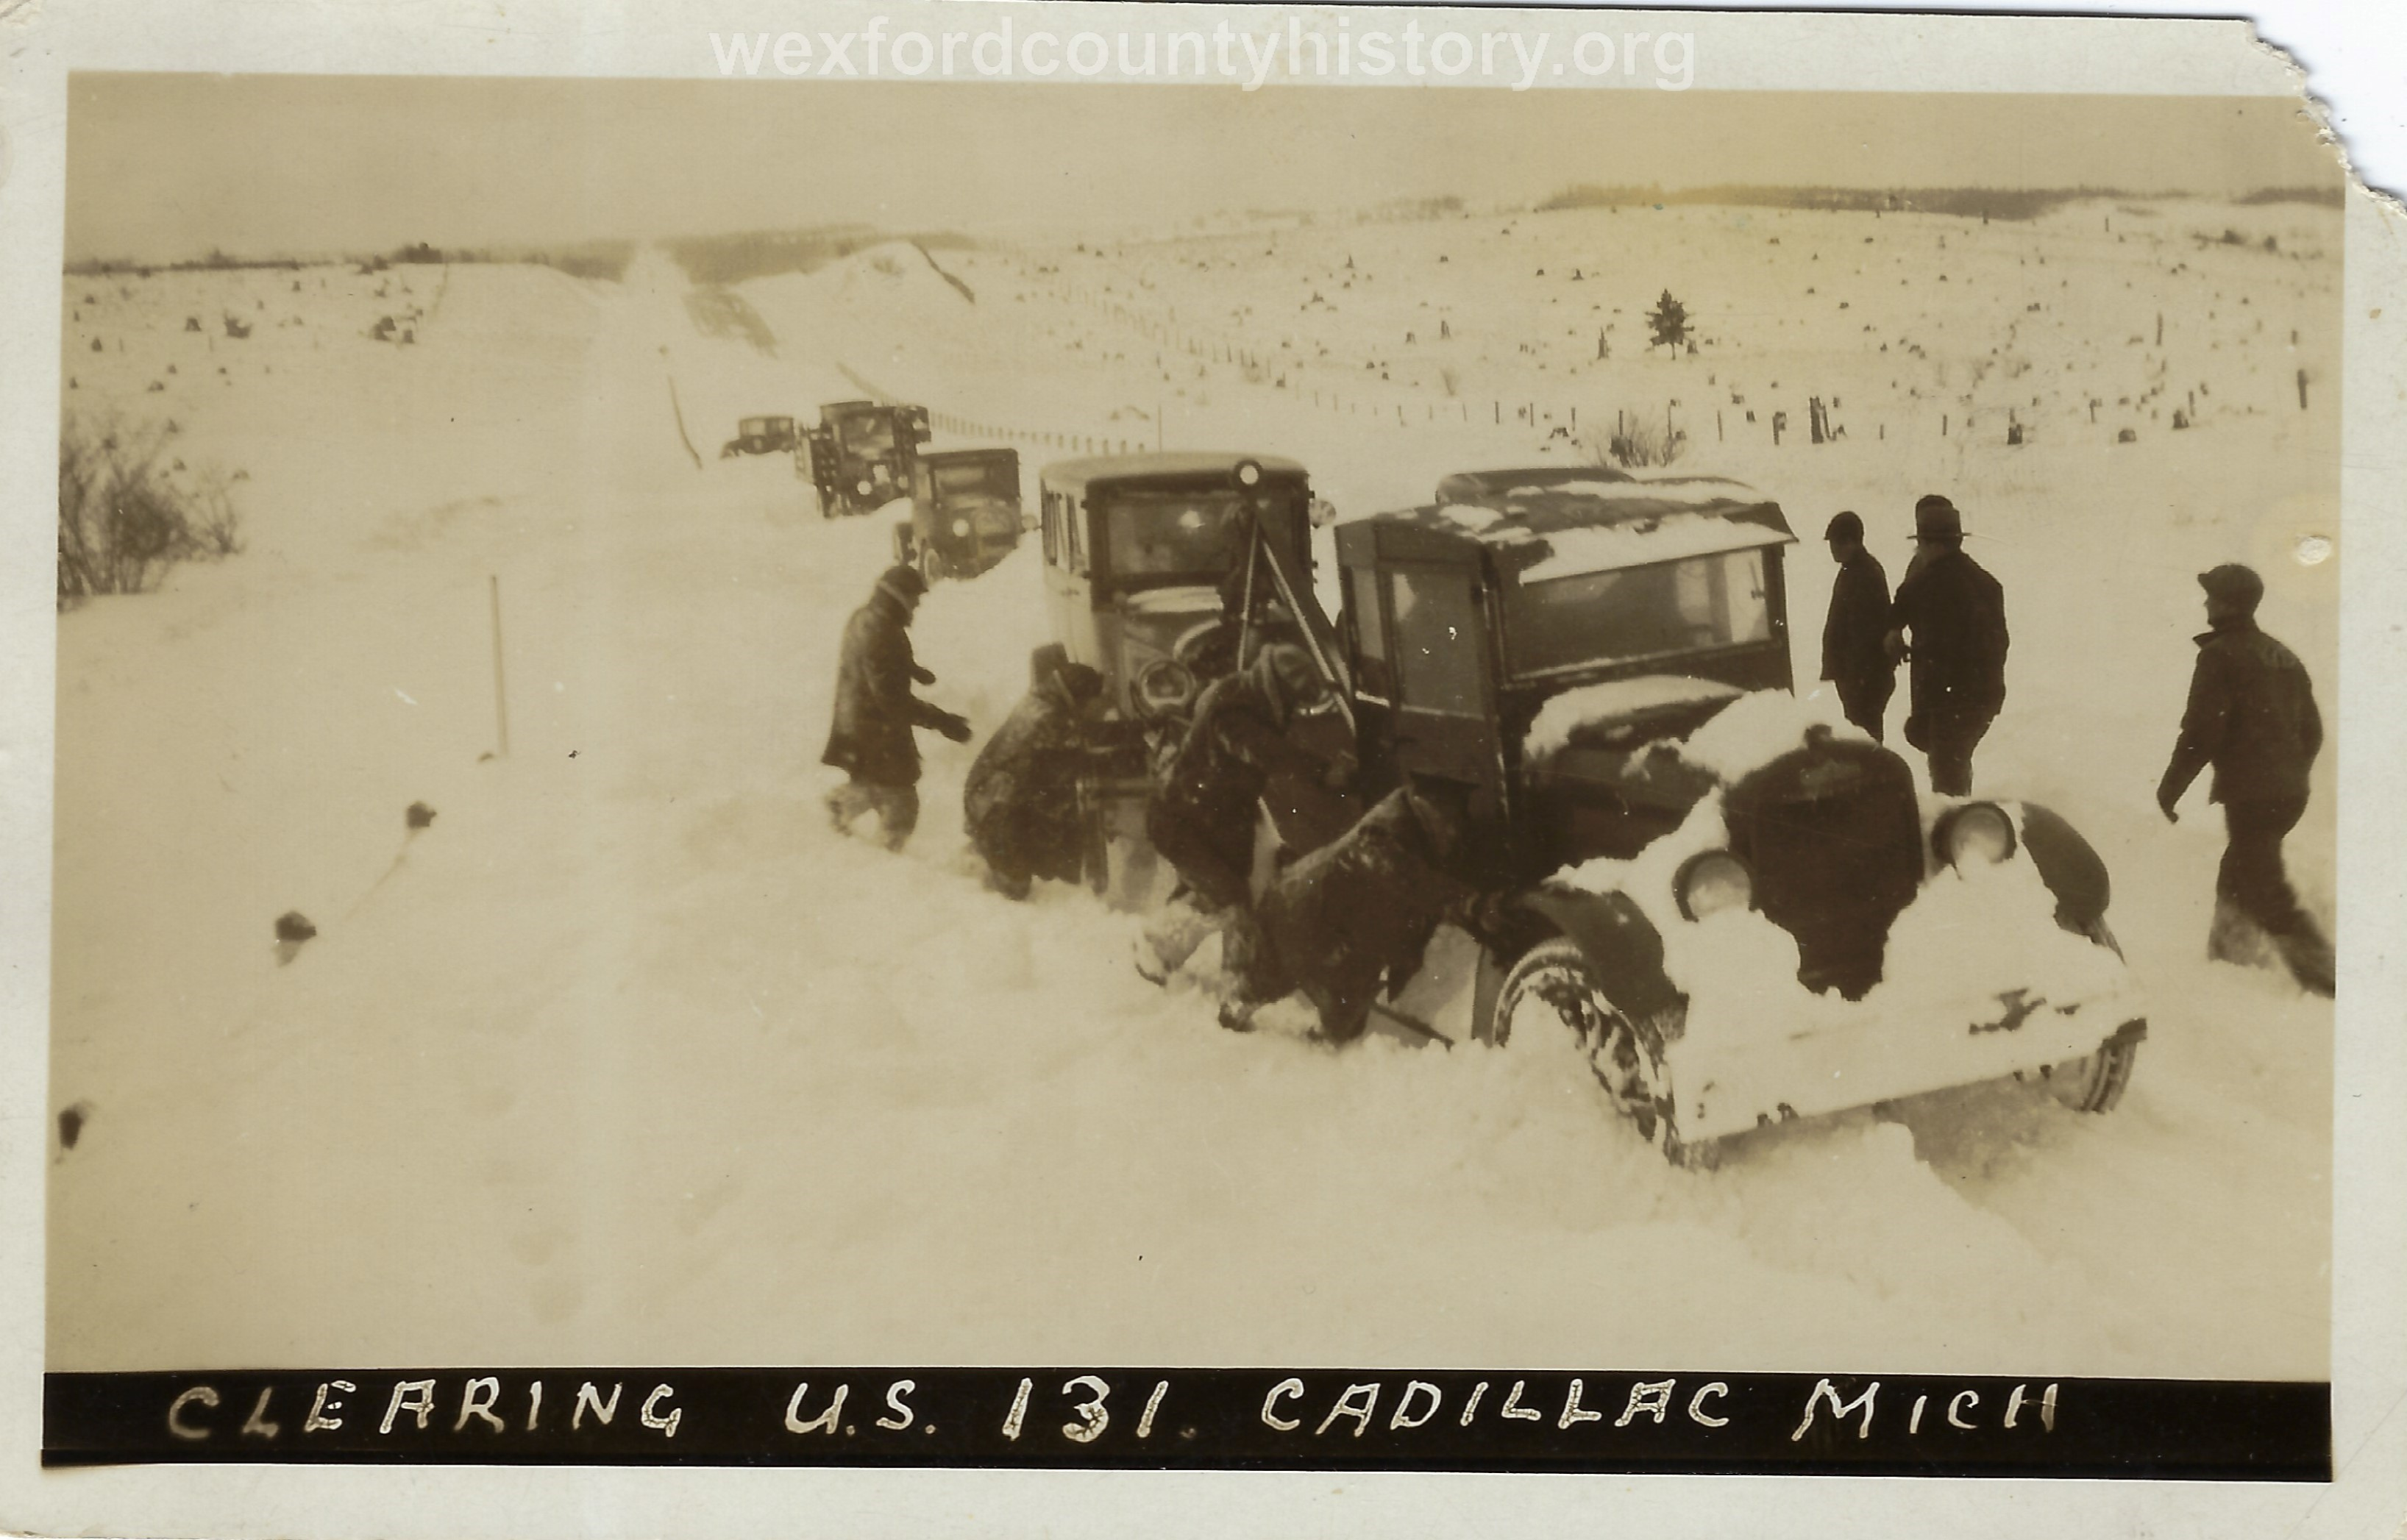 Cadillac-Weather-US-131-During-Winter-1